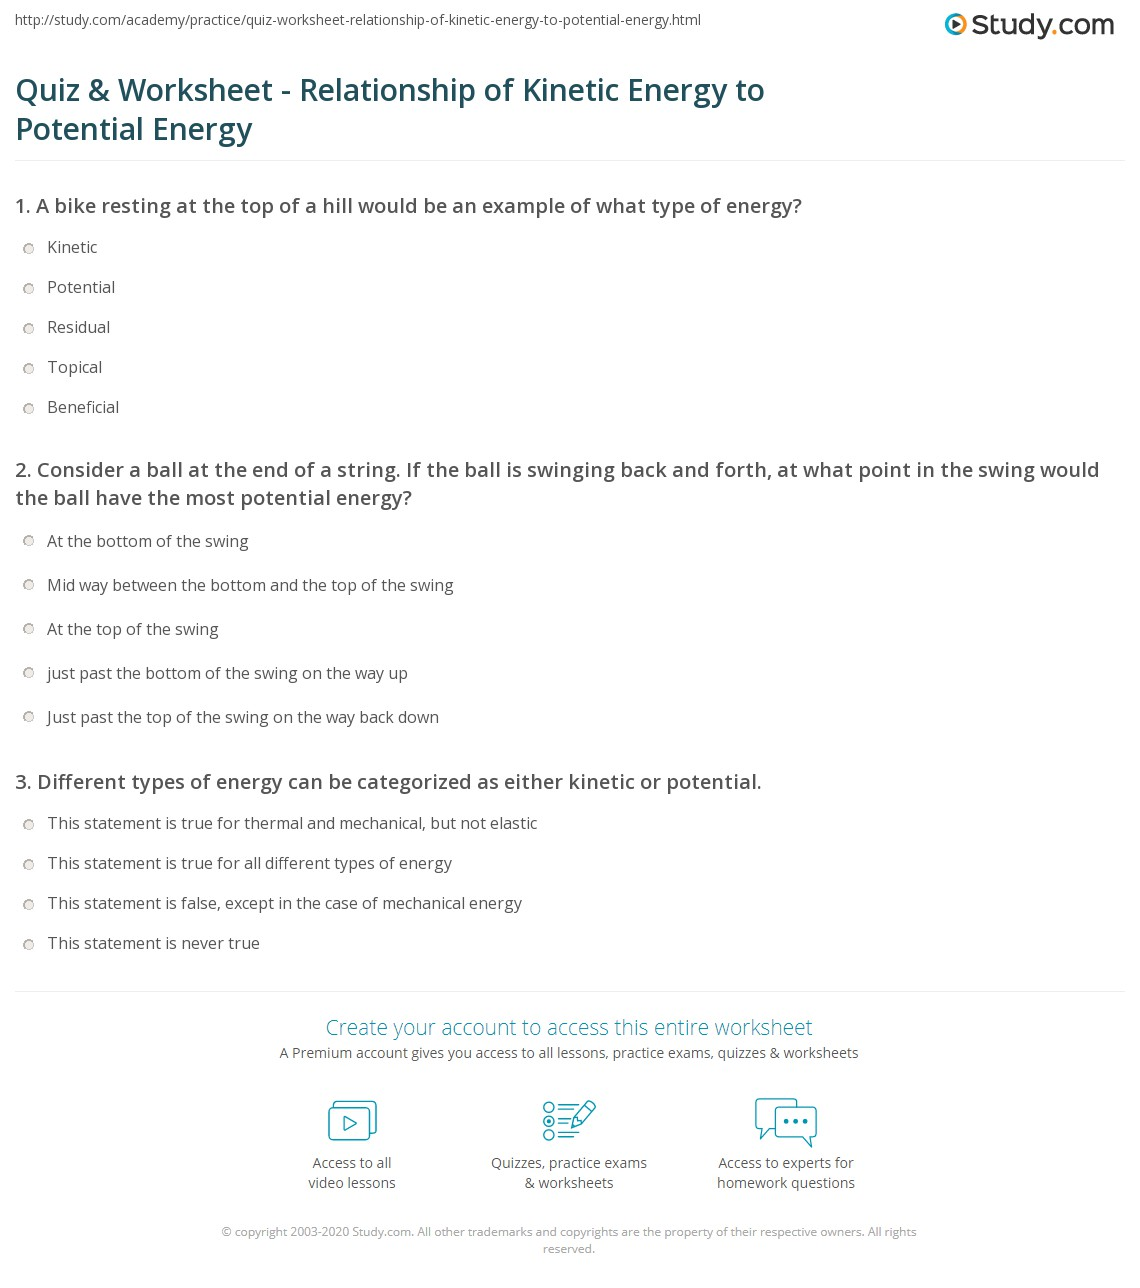 Worksheets Kinetic And Potential Energy Worksheet For Middle School quiz worksheet relationship of kinetic energy to potential print in different types worksheet